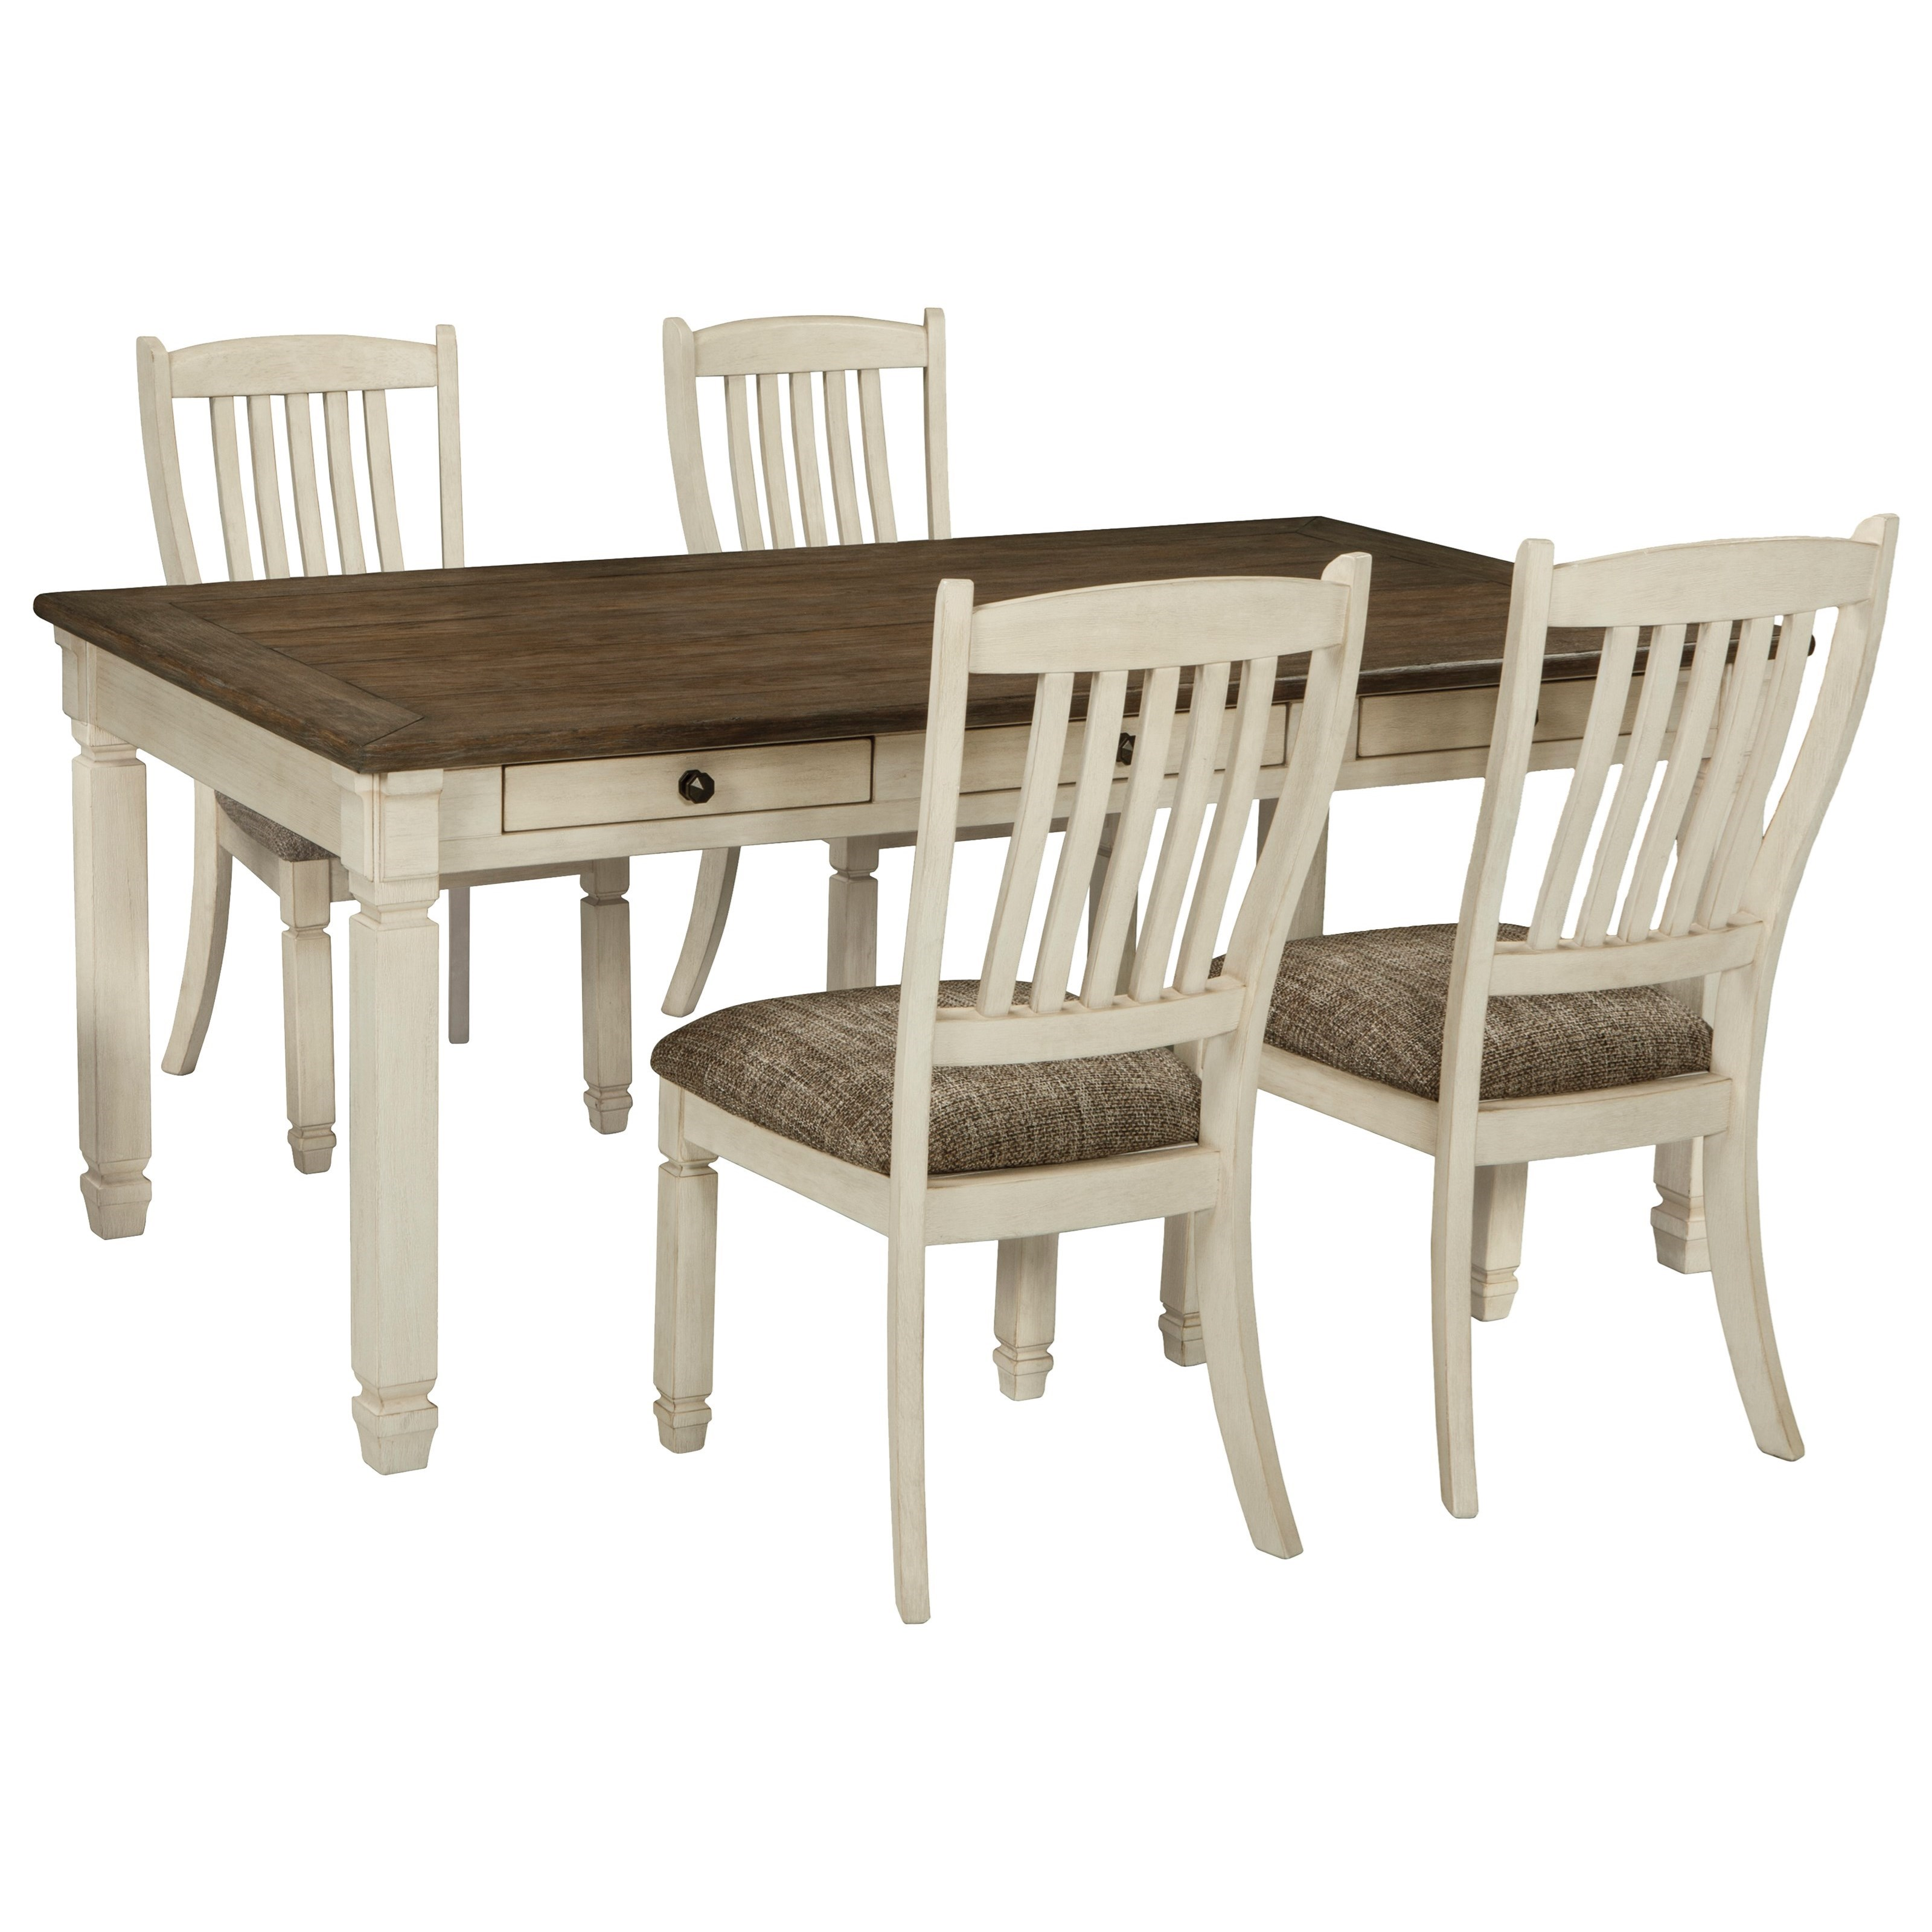 Signature design by ashley bolanburg relaxed vintage 5 for Table and chair set